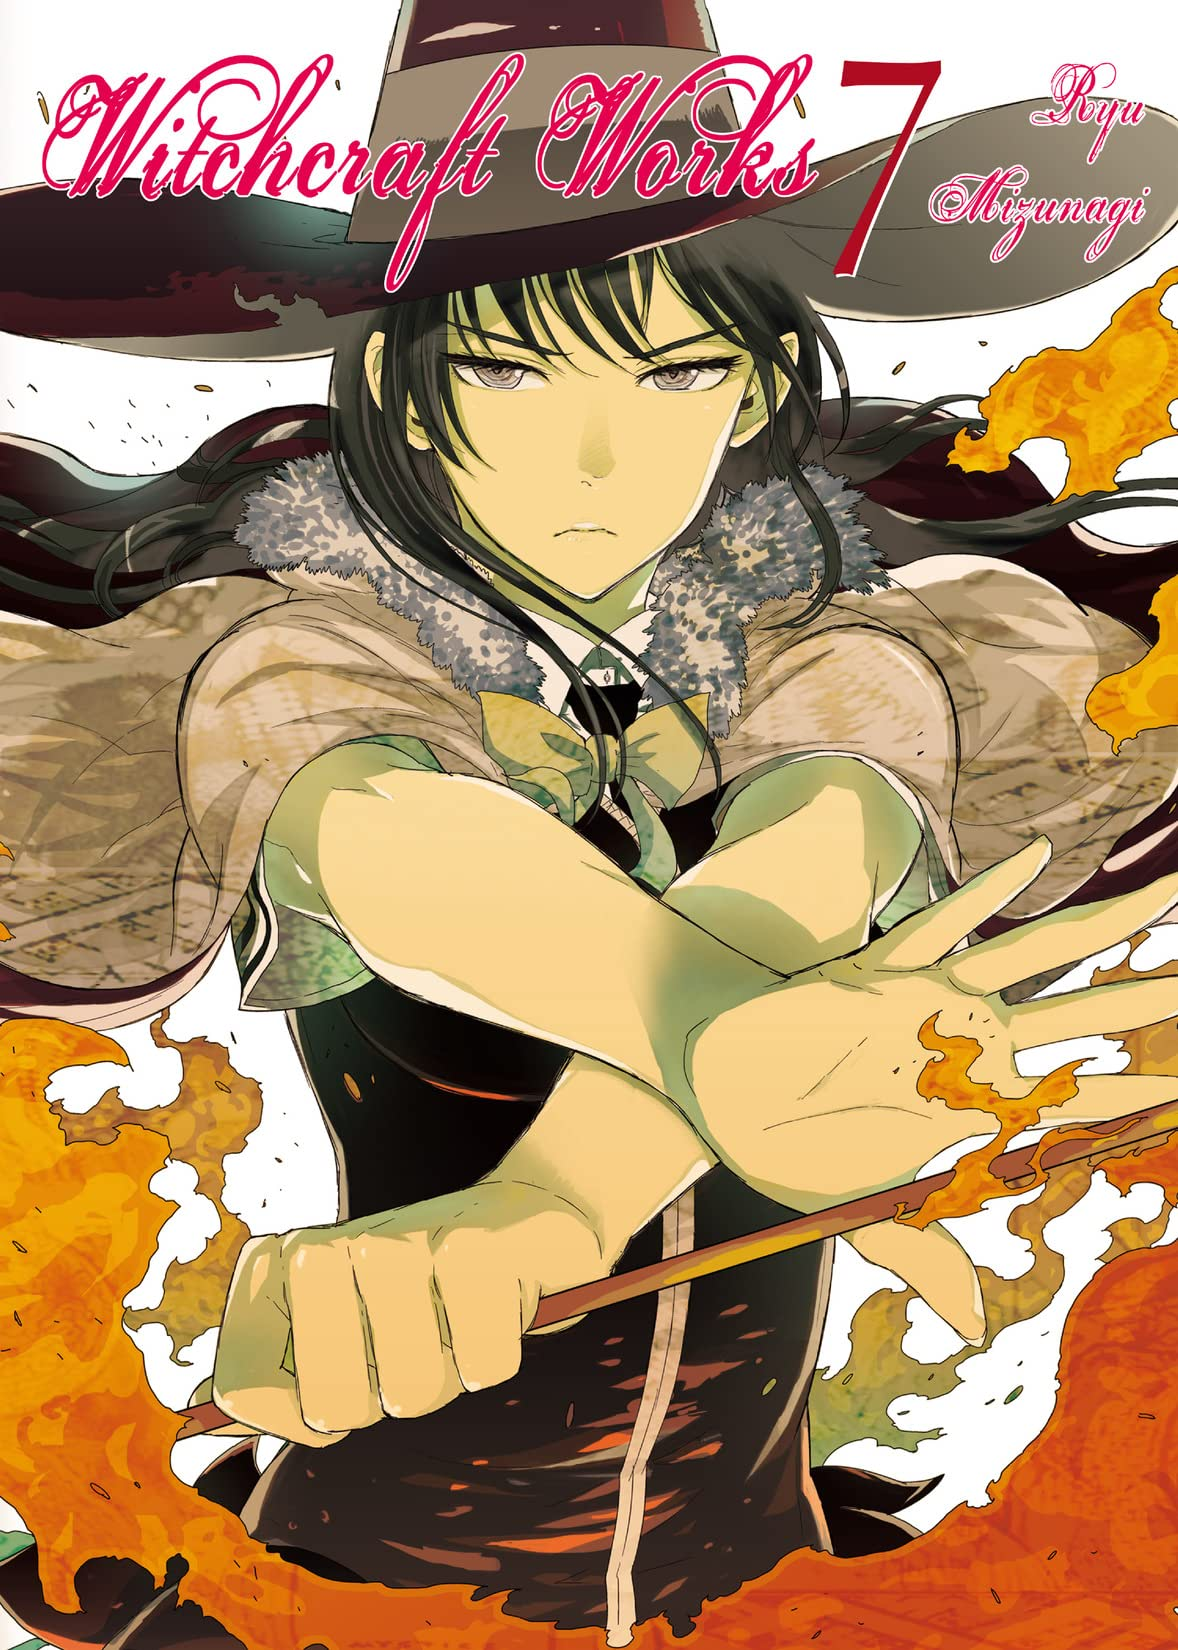 Witchcraft Works Vol. 7